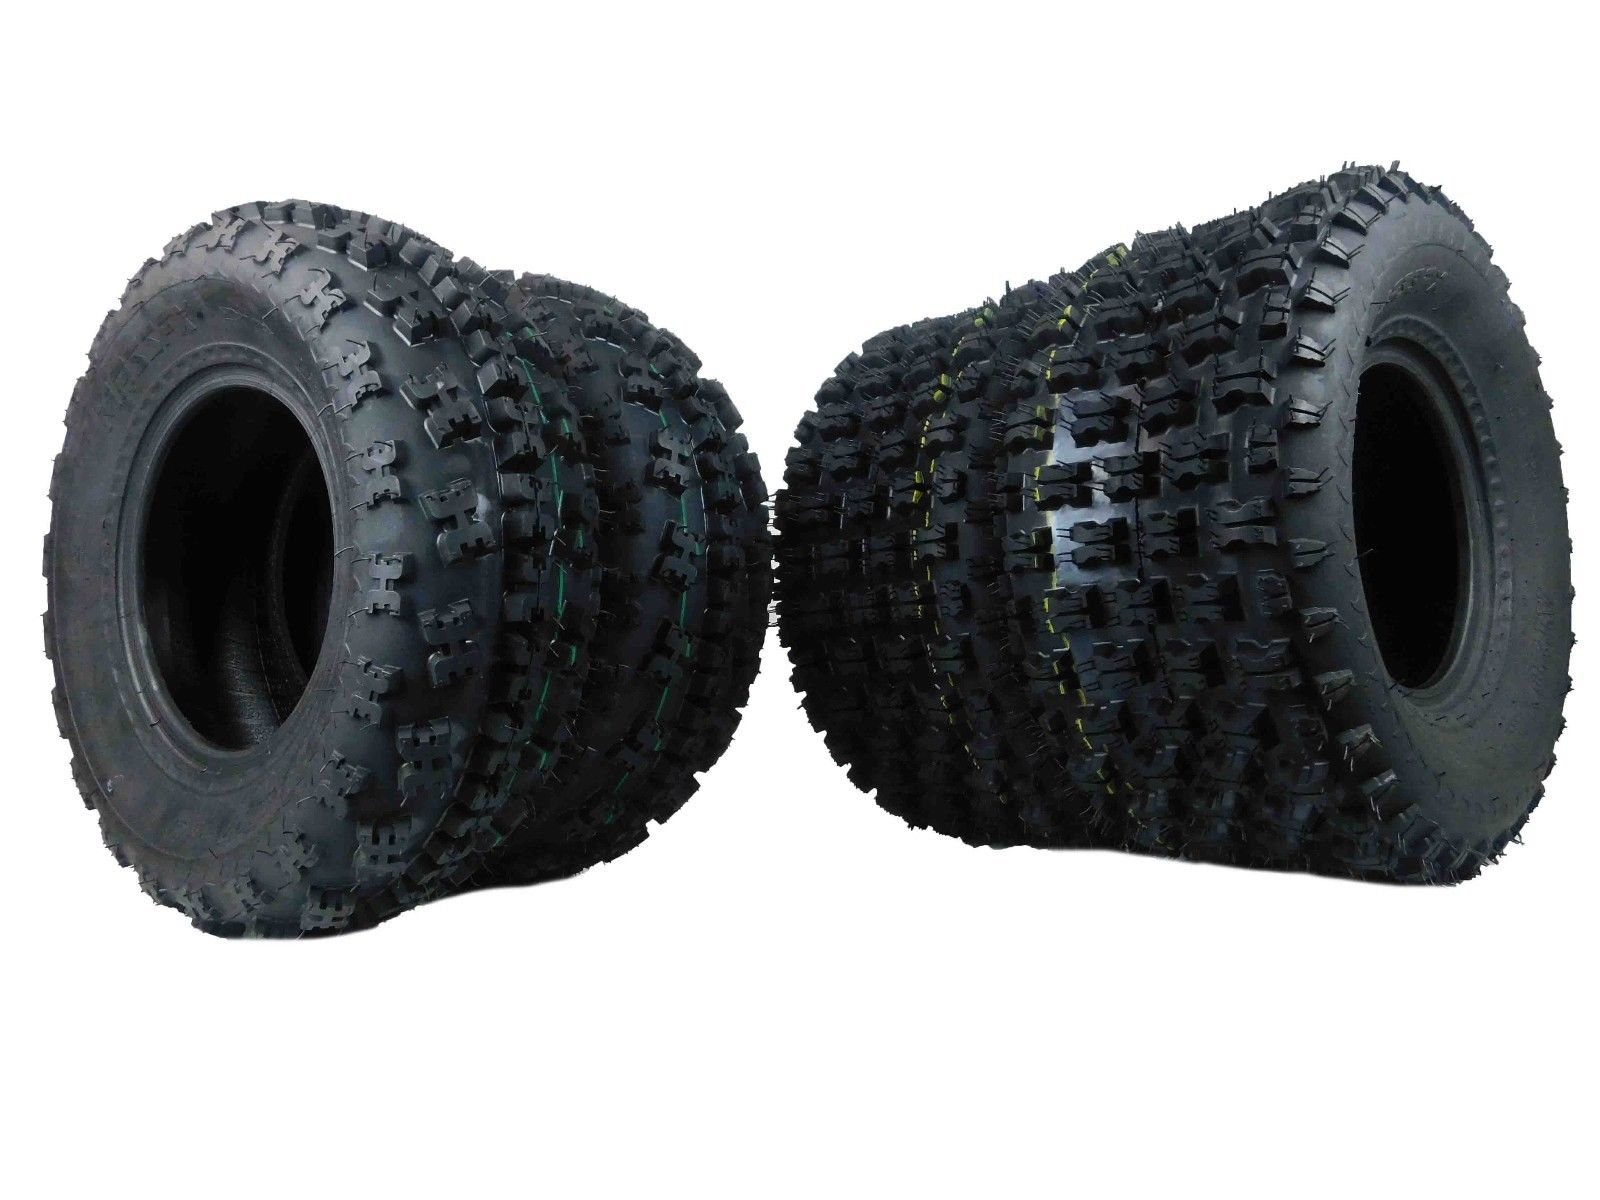 MASSFX-ATV-Tires-4-set-21X7-10-Front-20X10-9-Rear-4Ply-image-1